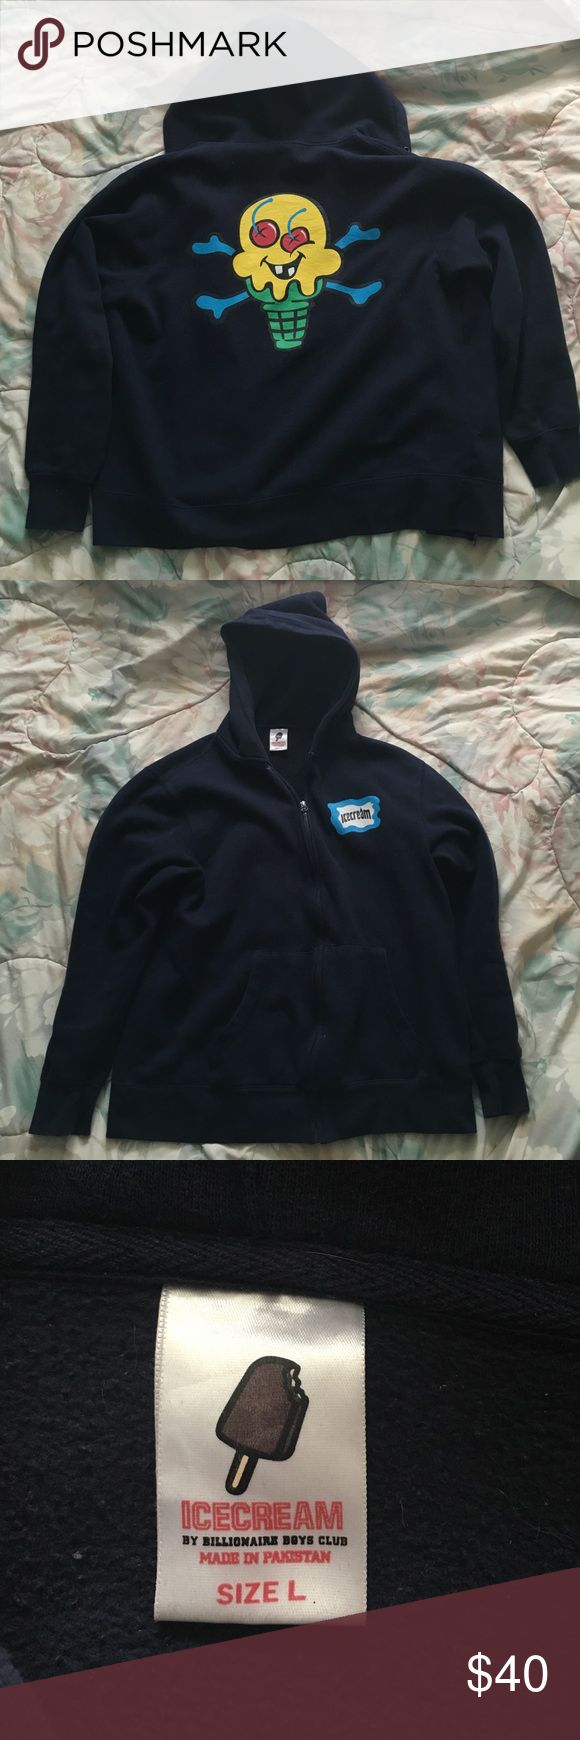 Ice Cream zip up hoodie Navy blue Ice Cream zip up hoodie in good condition no visible wear and tear. proof of authenticity included (see image above). Ice Cream Sweaters Zip Up